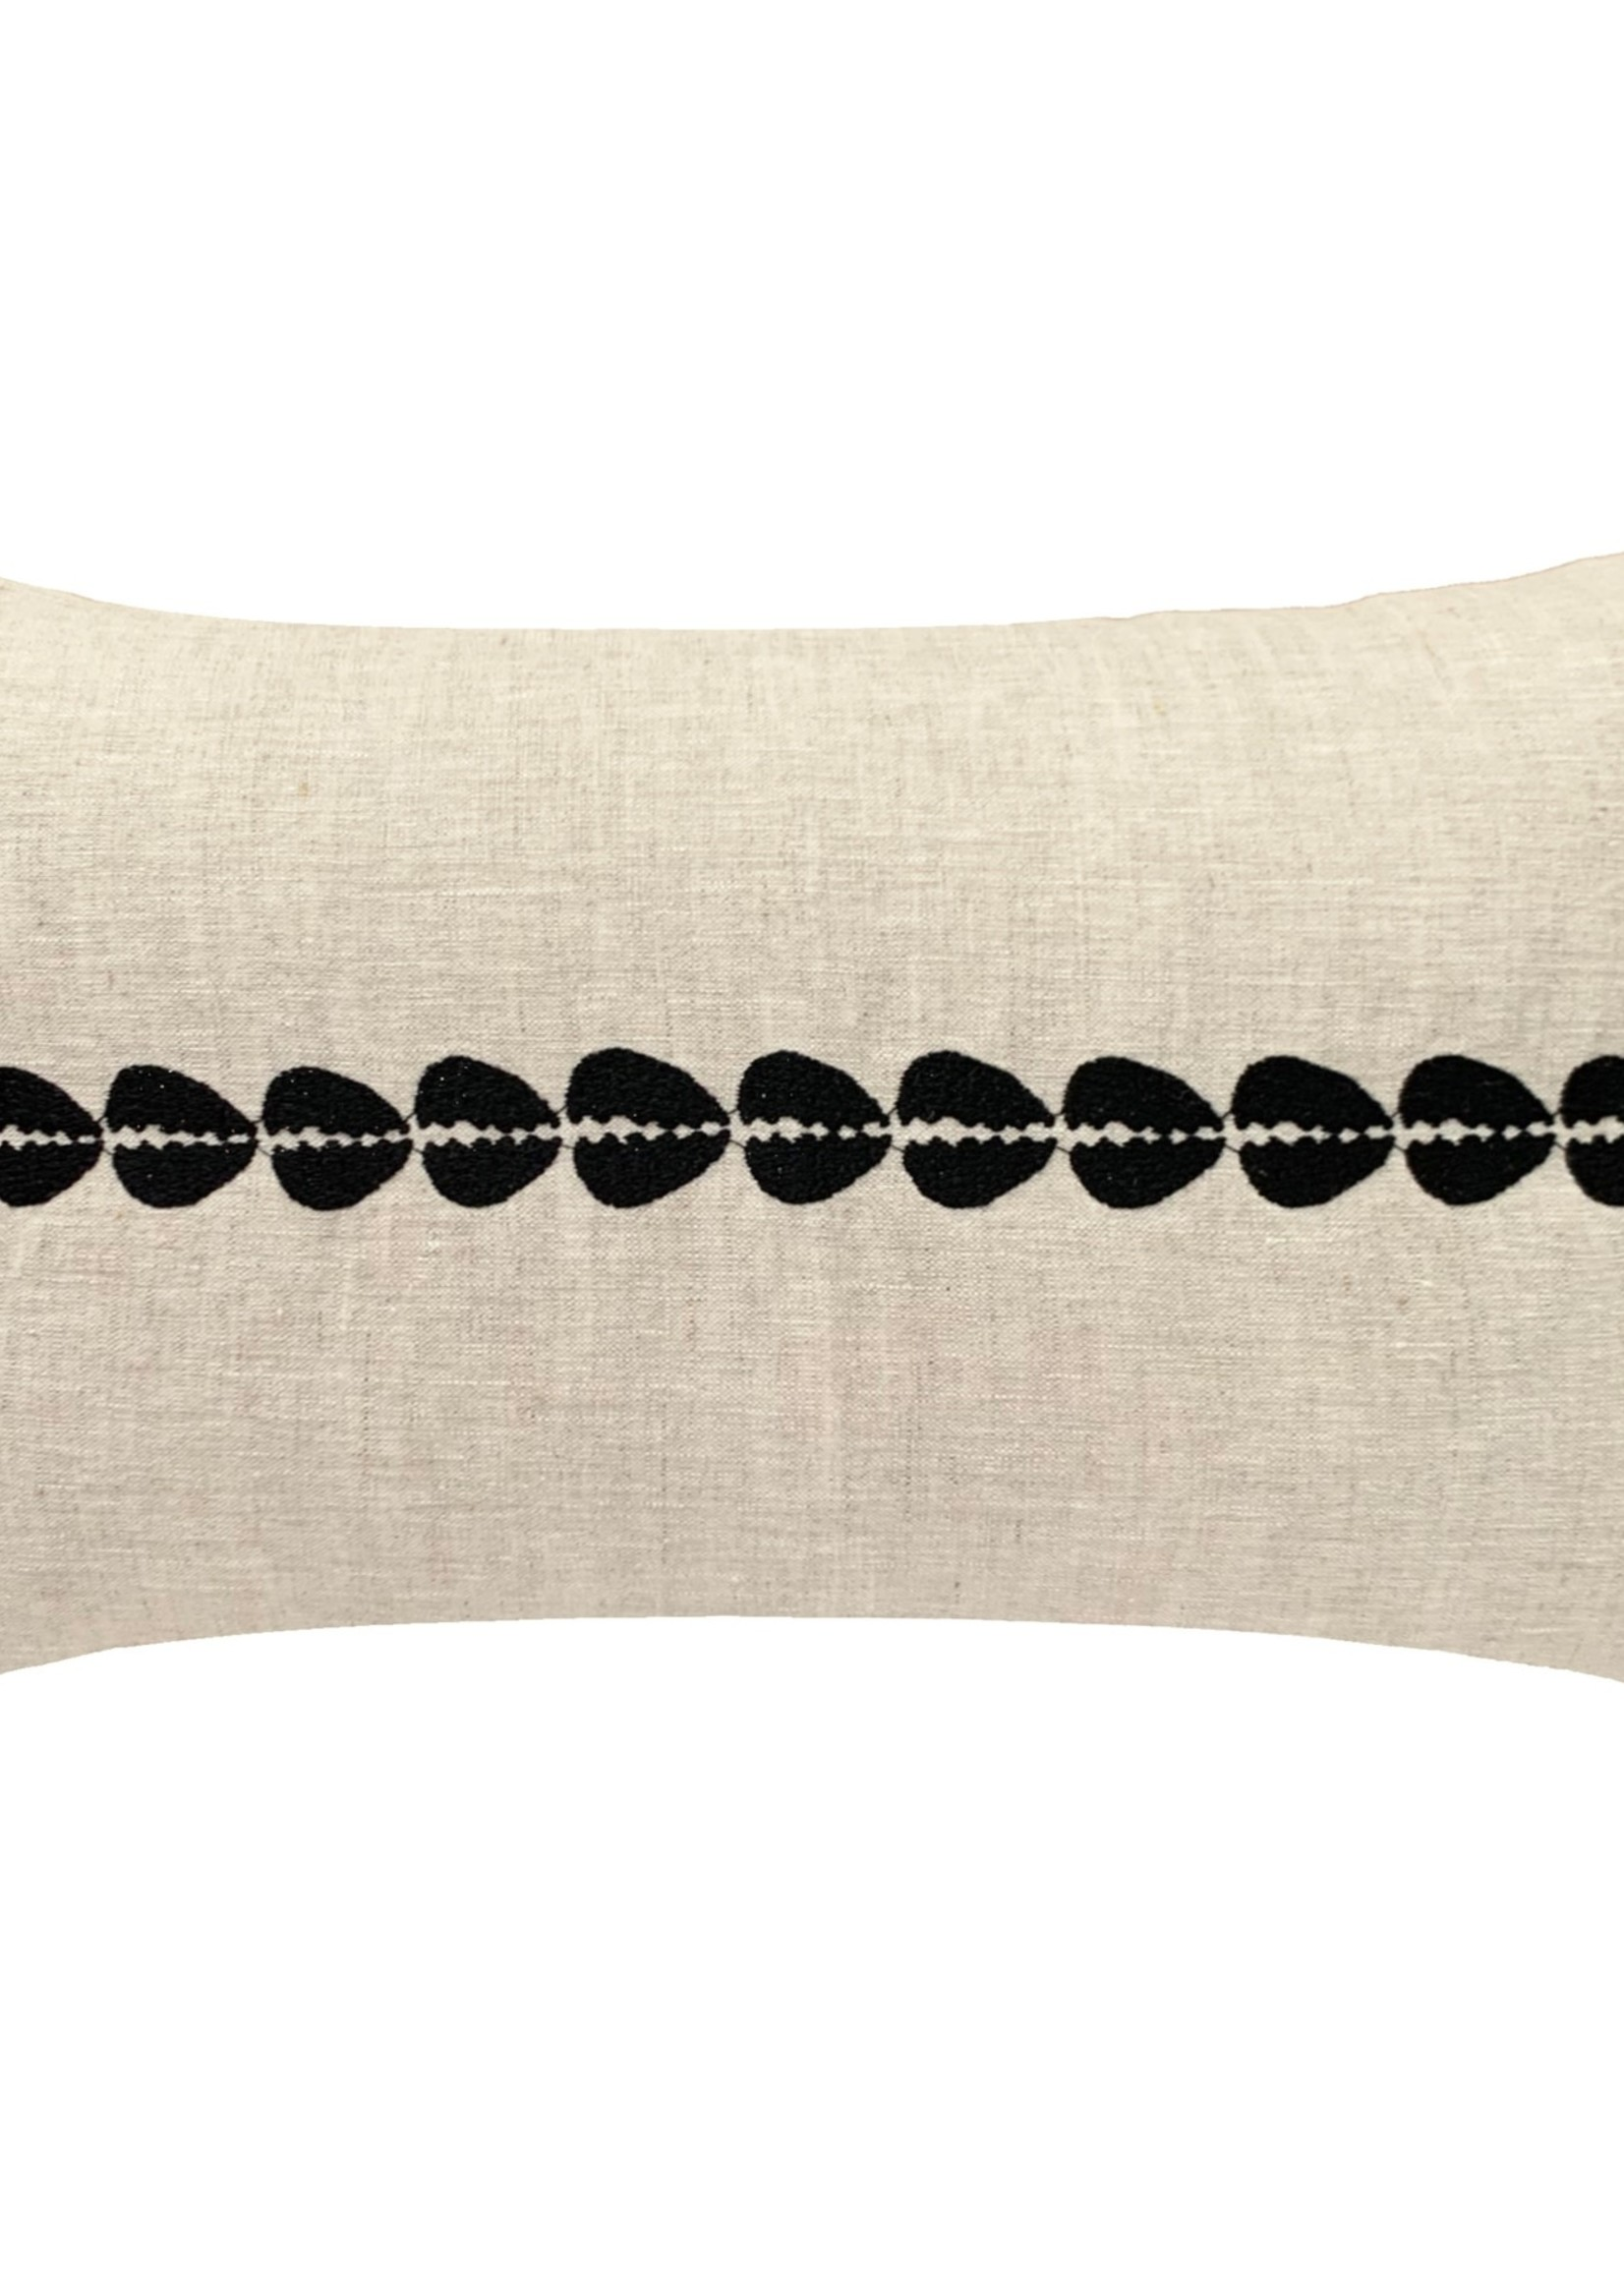 Pillowpia Cowrie Embroidered Lumbar Pillow in natural